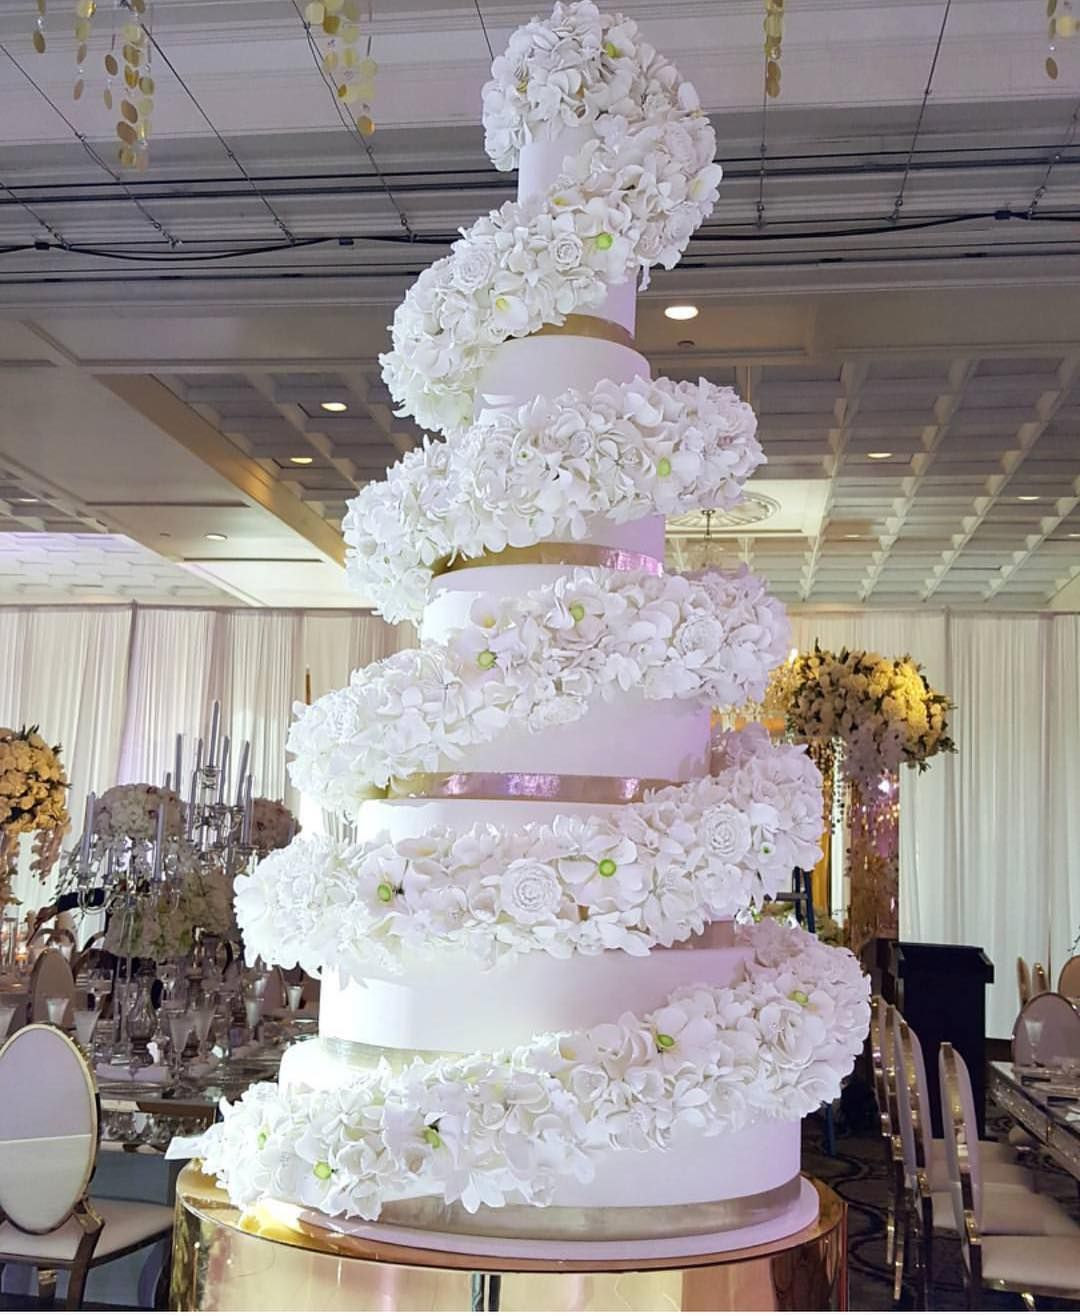 Pastryguru Weddingdreams Cake Wedding Cakes Und Amazing